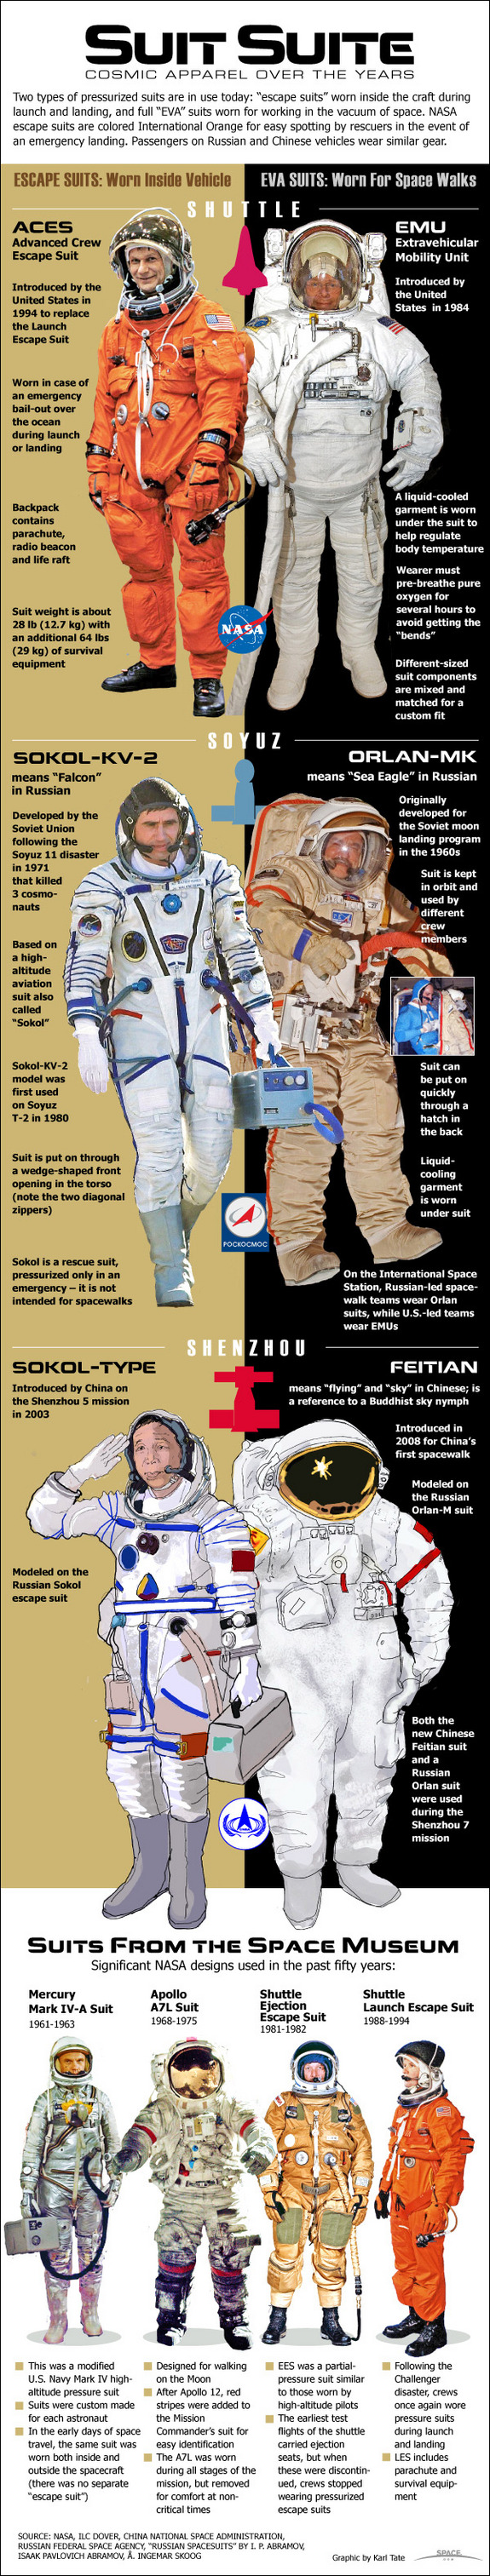 We review NASA's space suit cosmic apparel throughout history for the American, Russian and Chinese space programs.